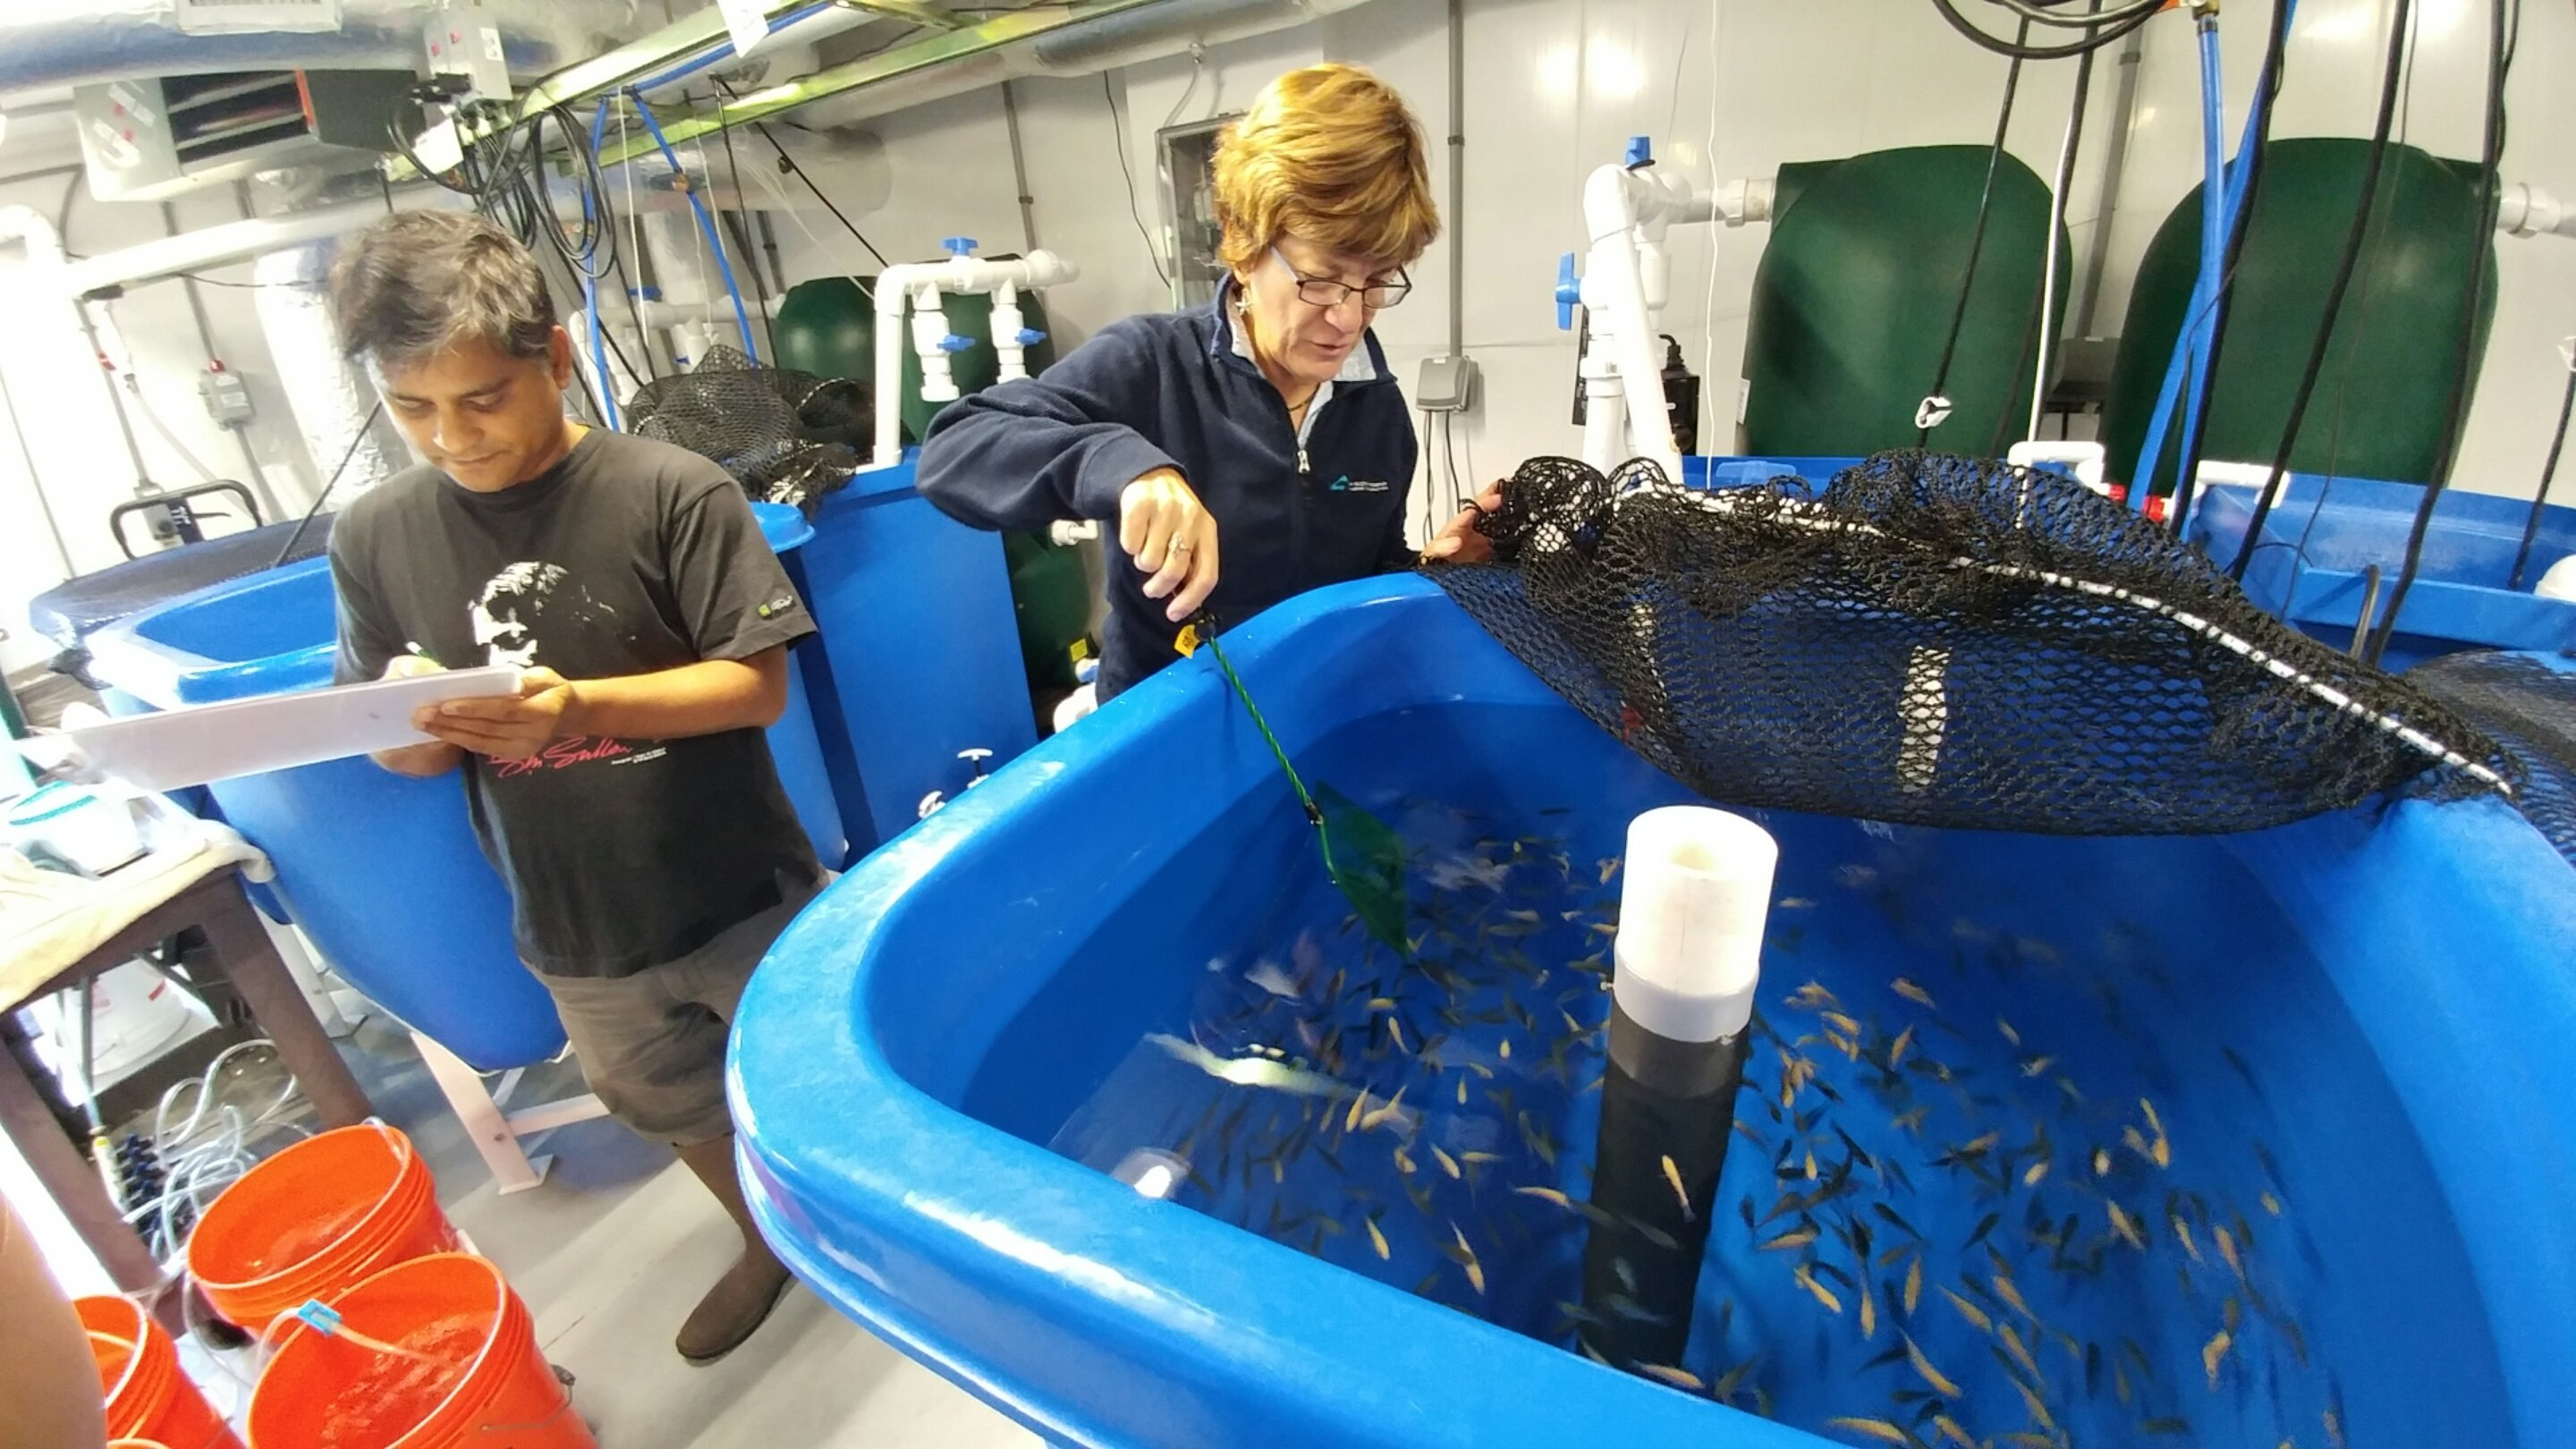 photo image Making aquafeed more sustainable: Scientists develop feeds using a marine microalga co-product